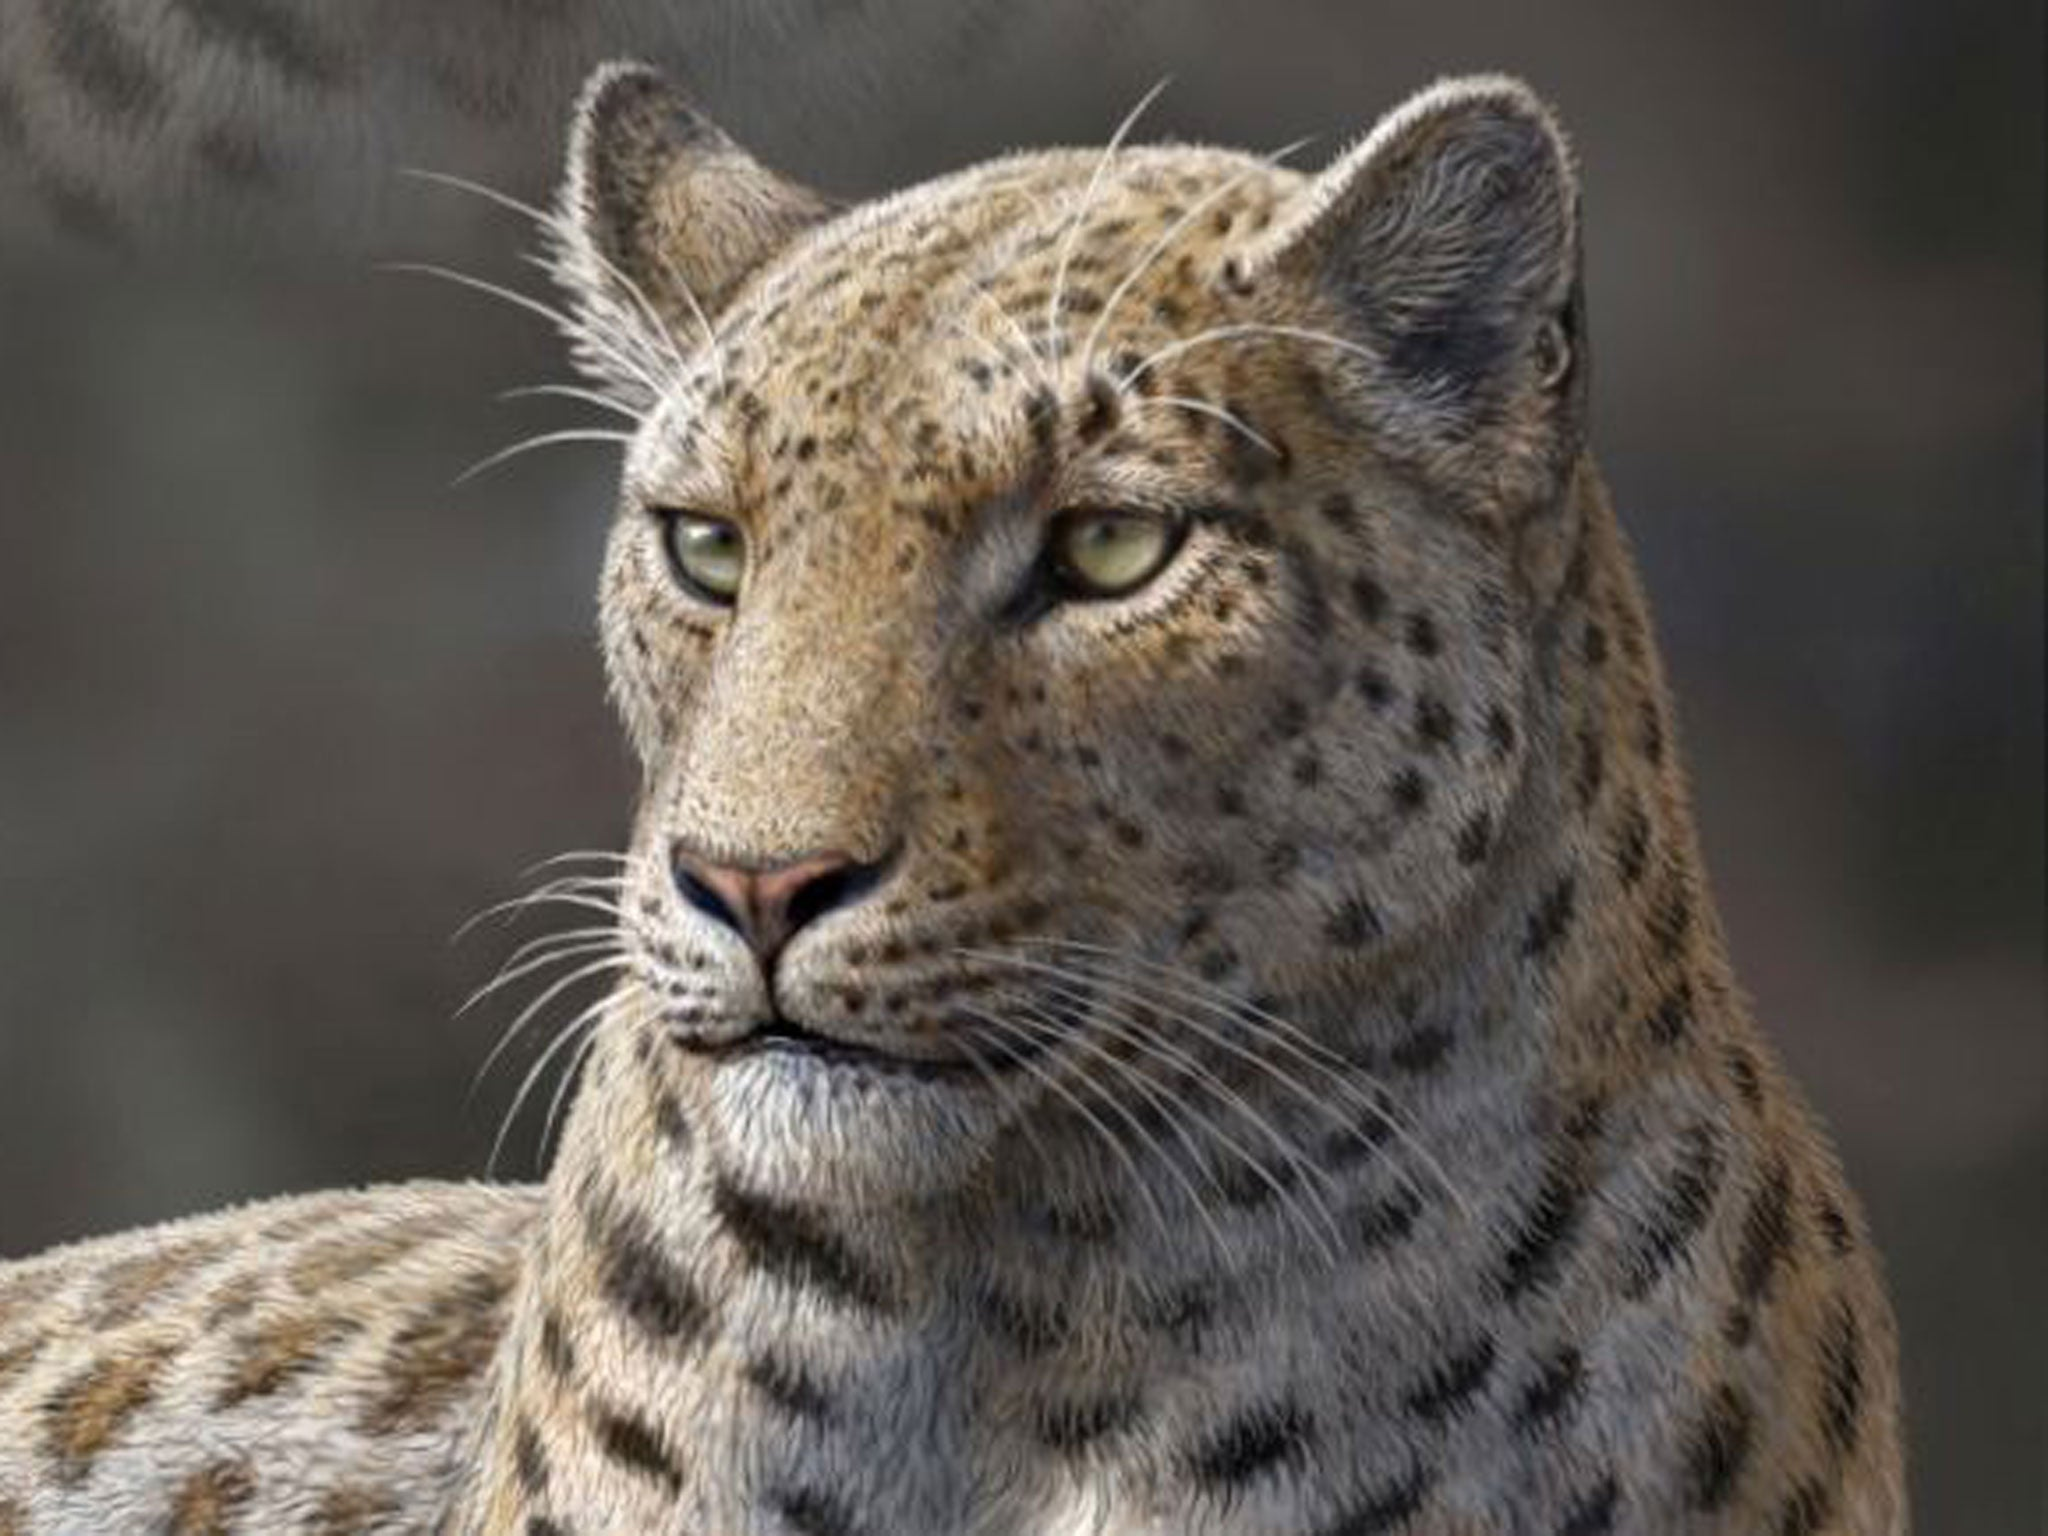 10 Large Cat Breeds in the World - Tail and Fur  |Big Cat Species